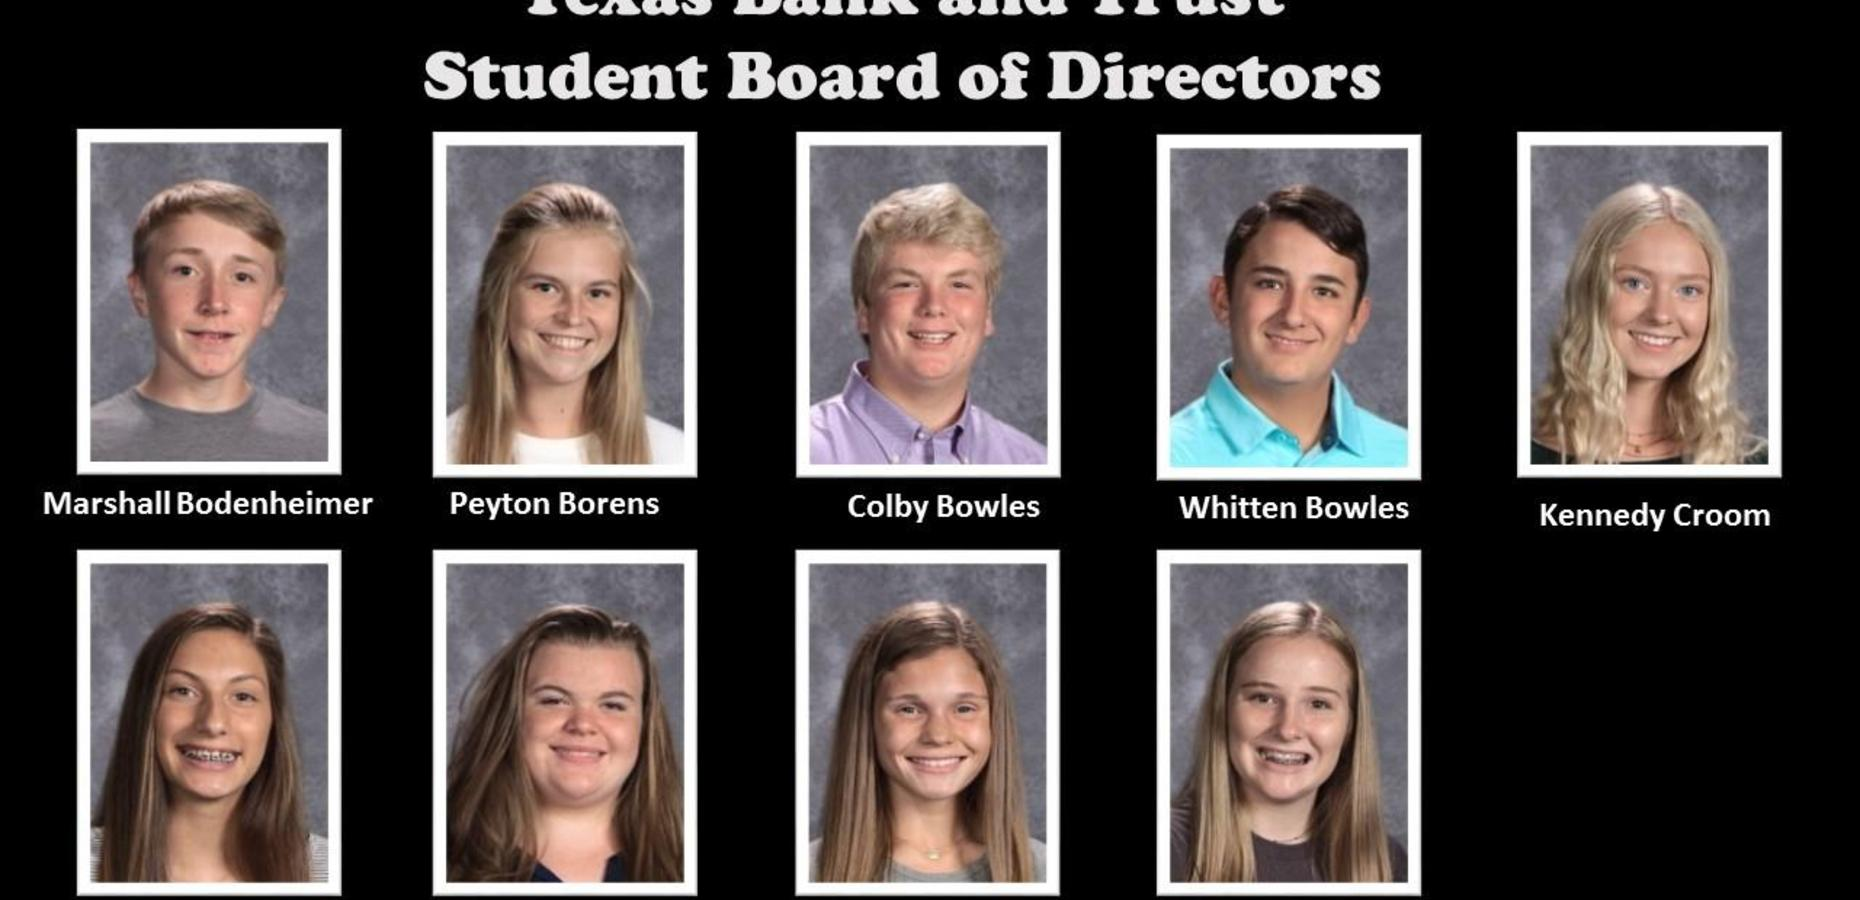 Texas Bank & Trust Student Board of Directors